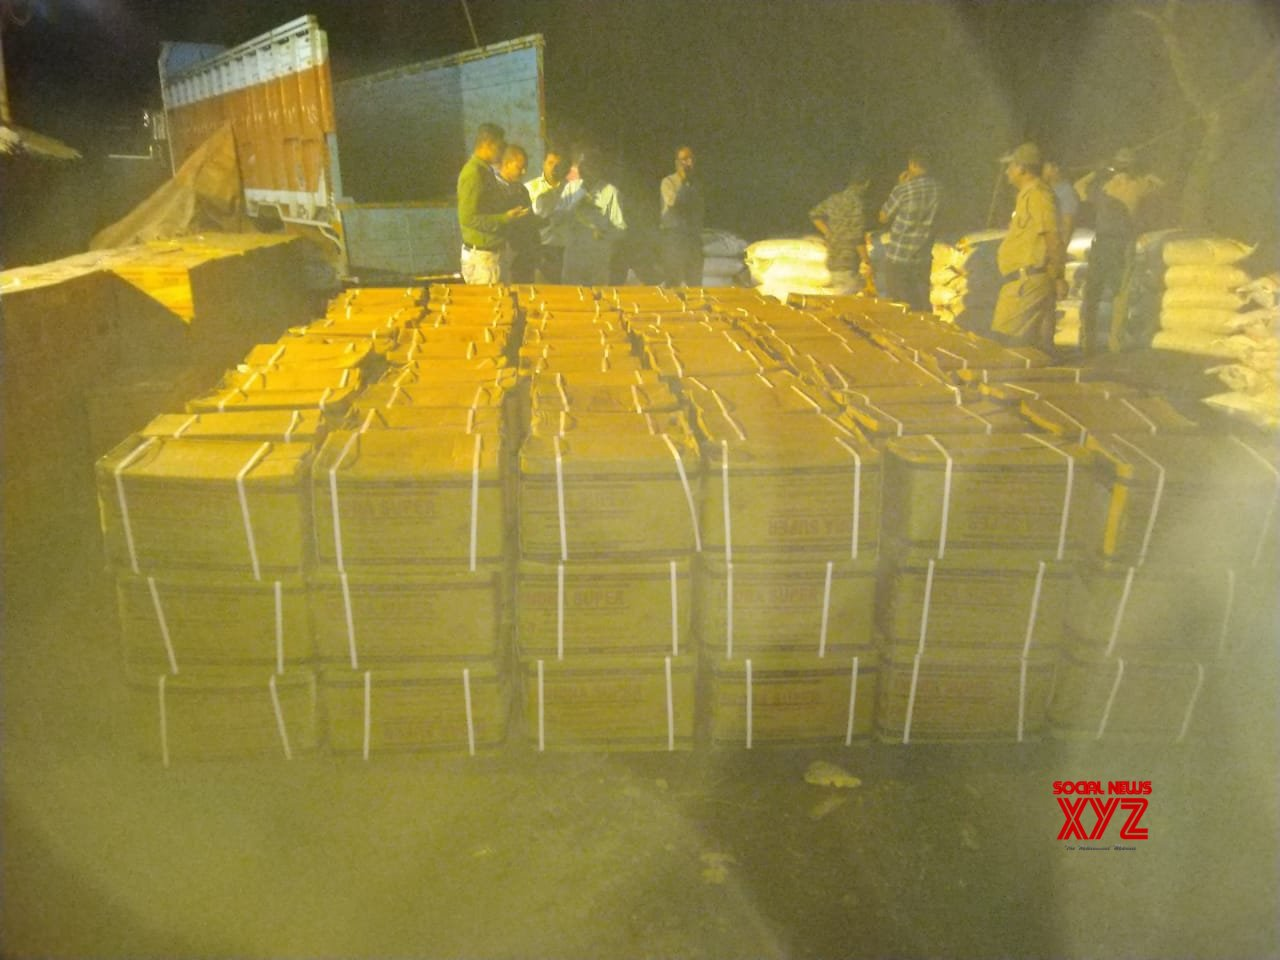 Bankura: Truck with explosives seized in Bengal, 1 arrested #Gallery